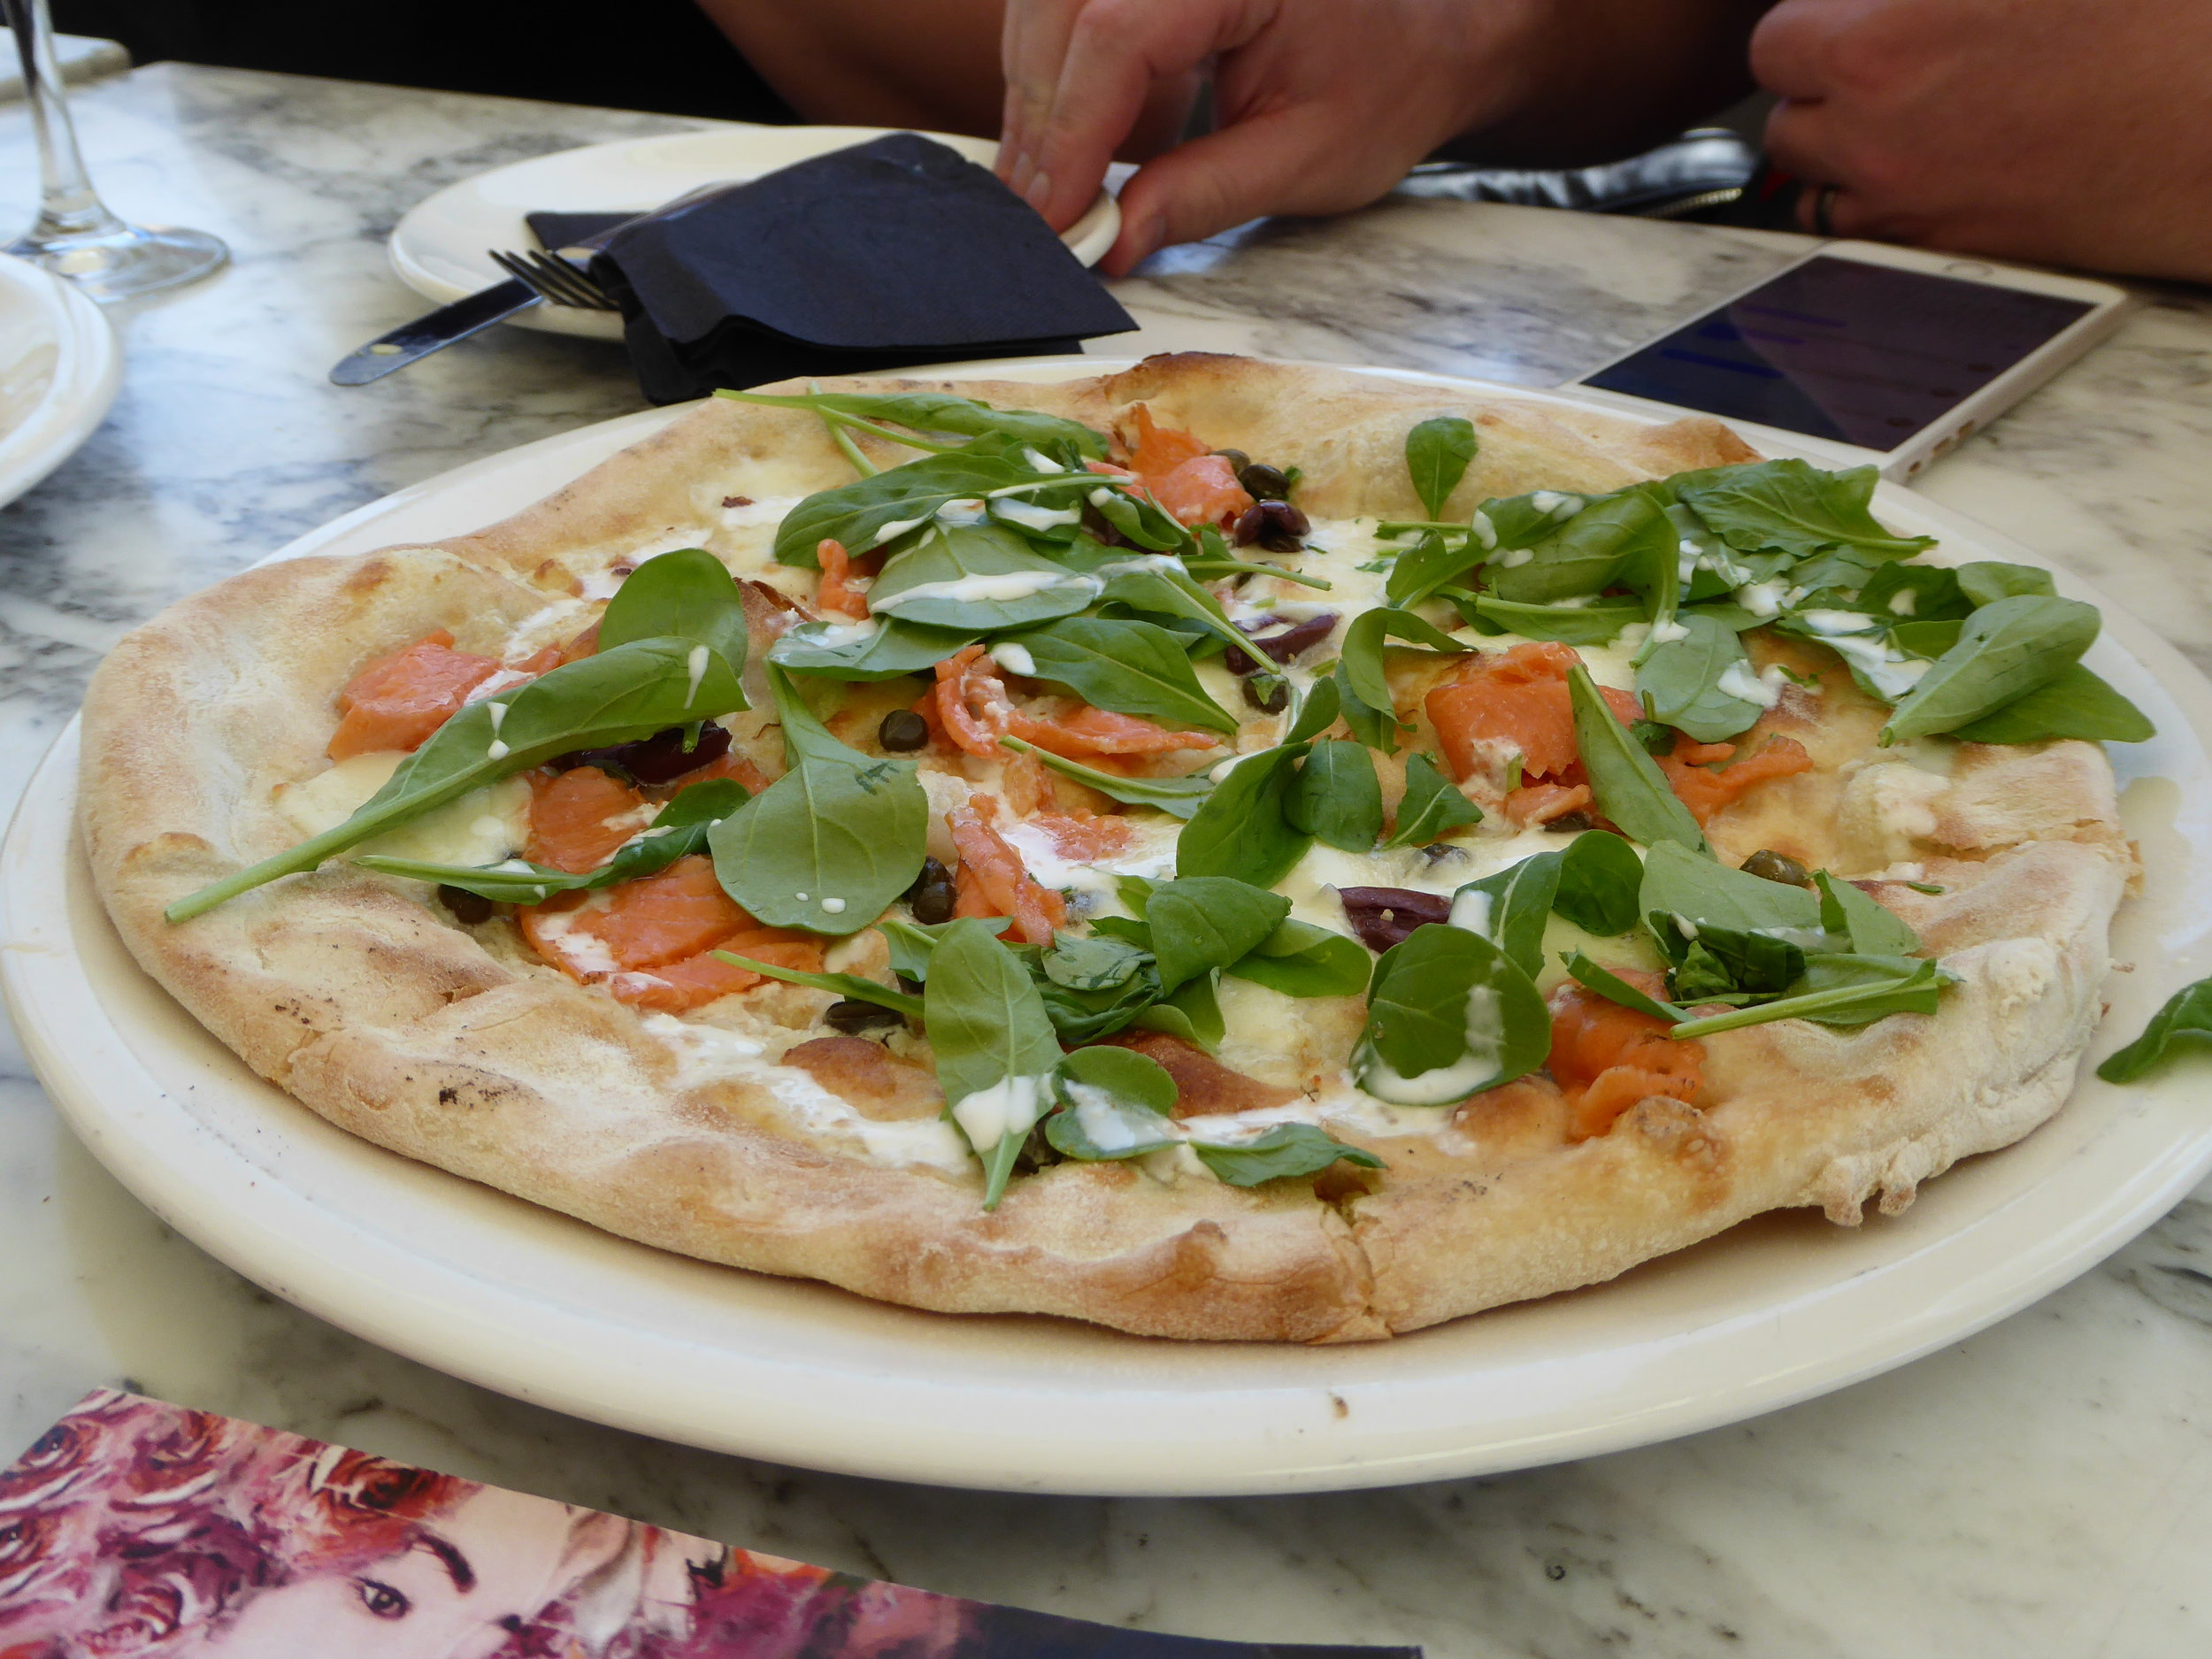 That's salmon pizza, only the fresh ingredients here.